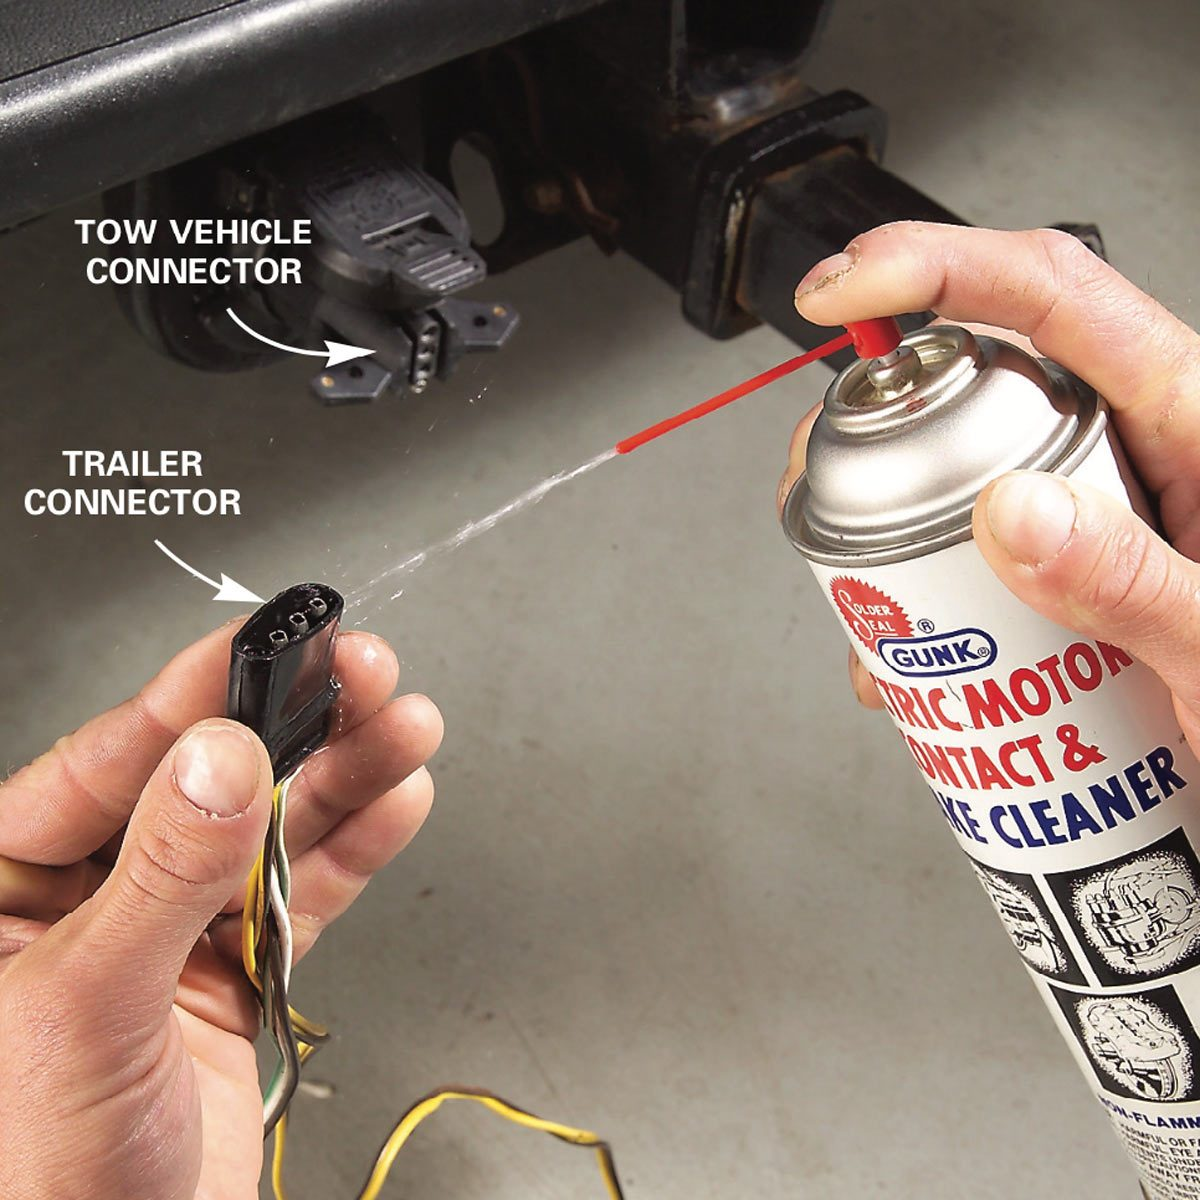 [DIAGRAM_5NL]  Lights Out? Here's 9 Trailer Wiring Fixes | Family Handyman | Troubleshooting Lighting Functions On Trailer Wiring Harness |  | The Family Handyman